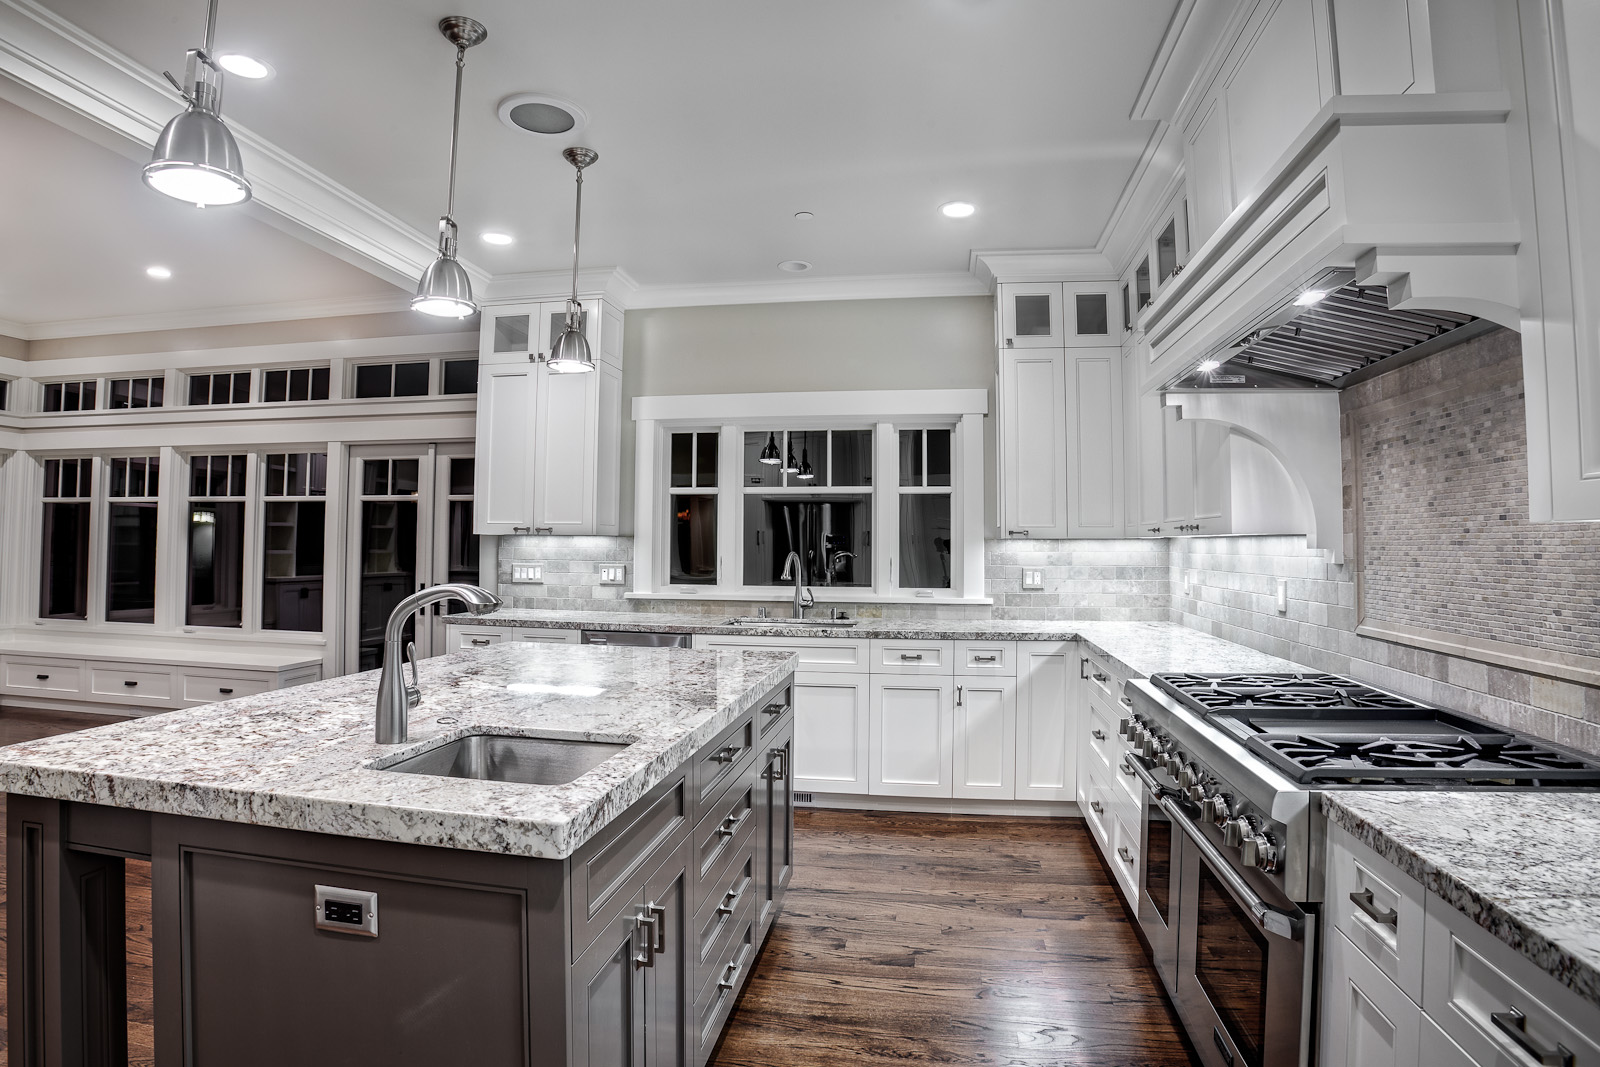 Marble kitchen 4.jpg